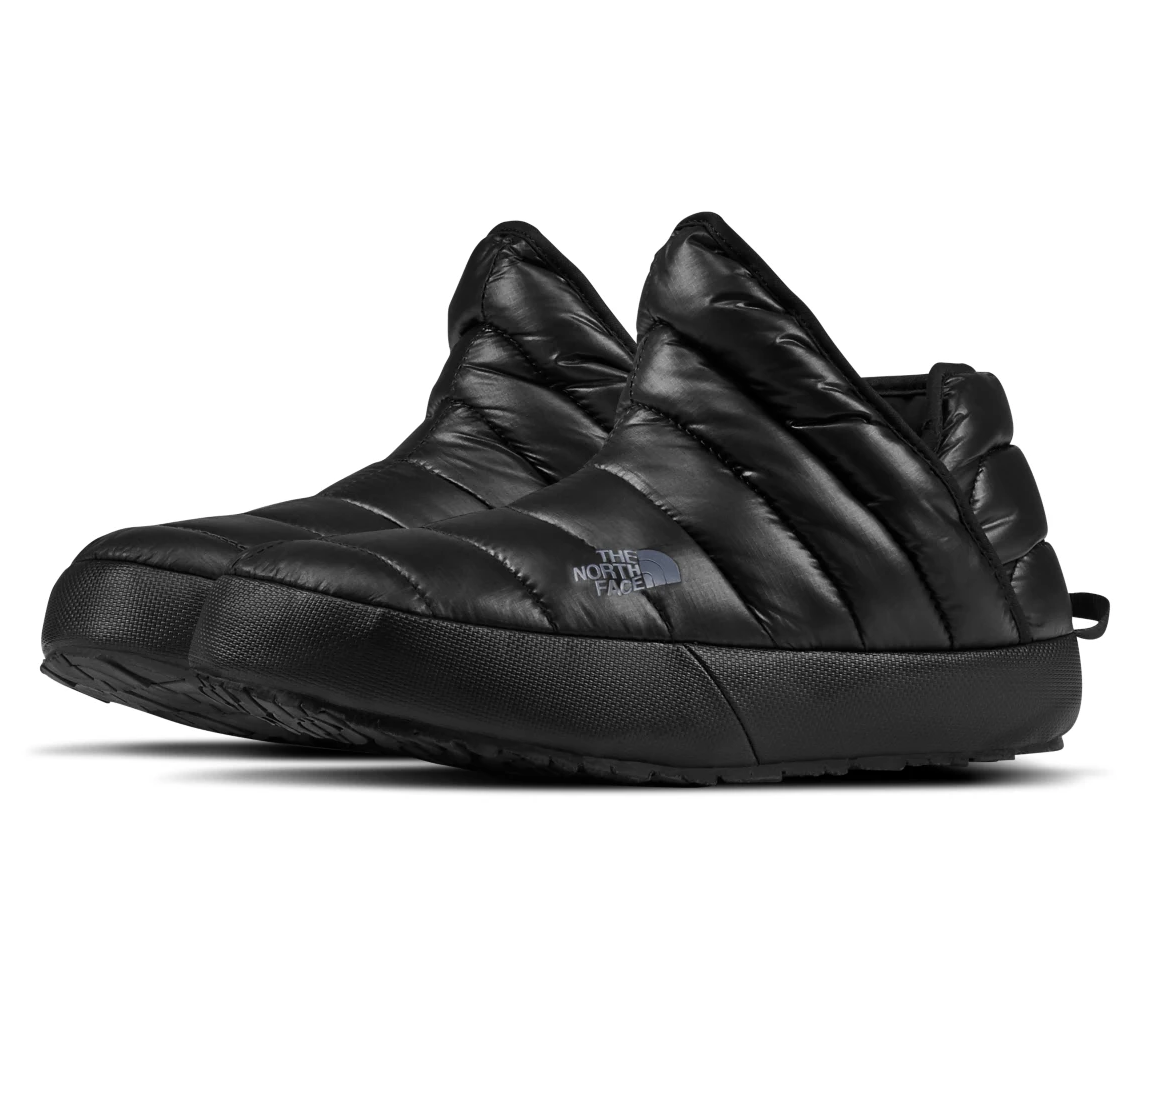 The North Face Men's Thermoball Eco Traction Bootie